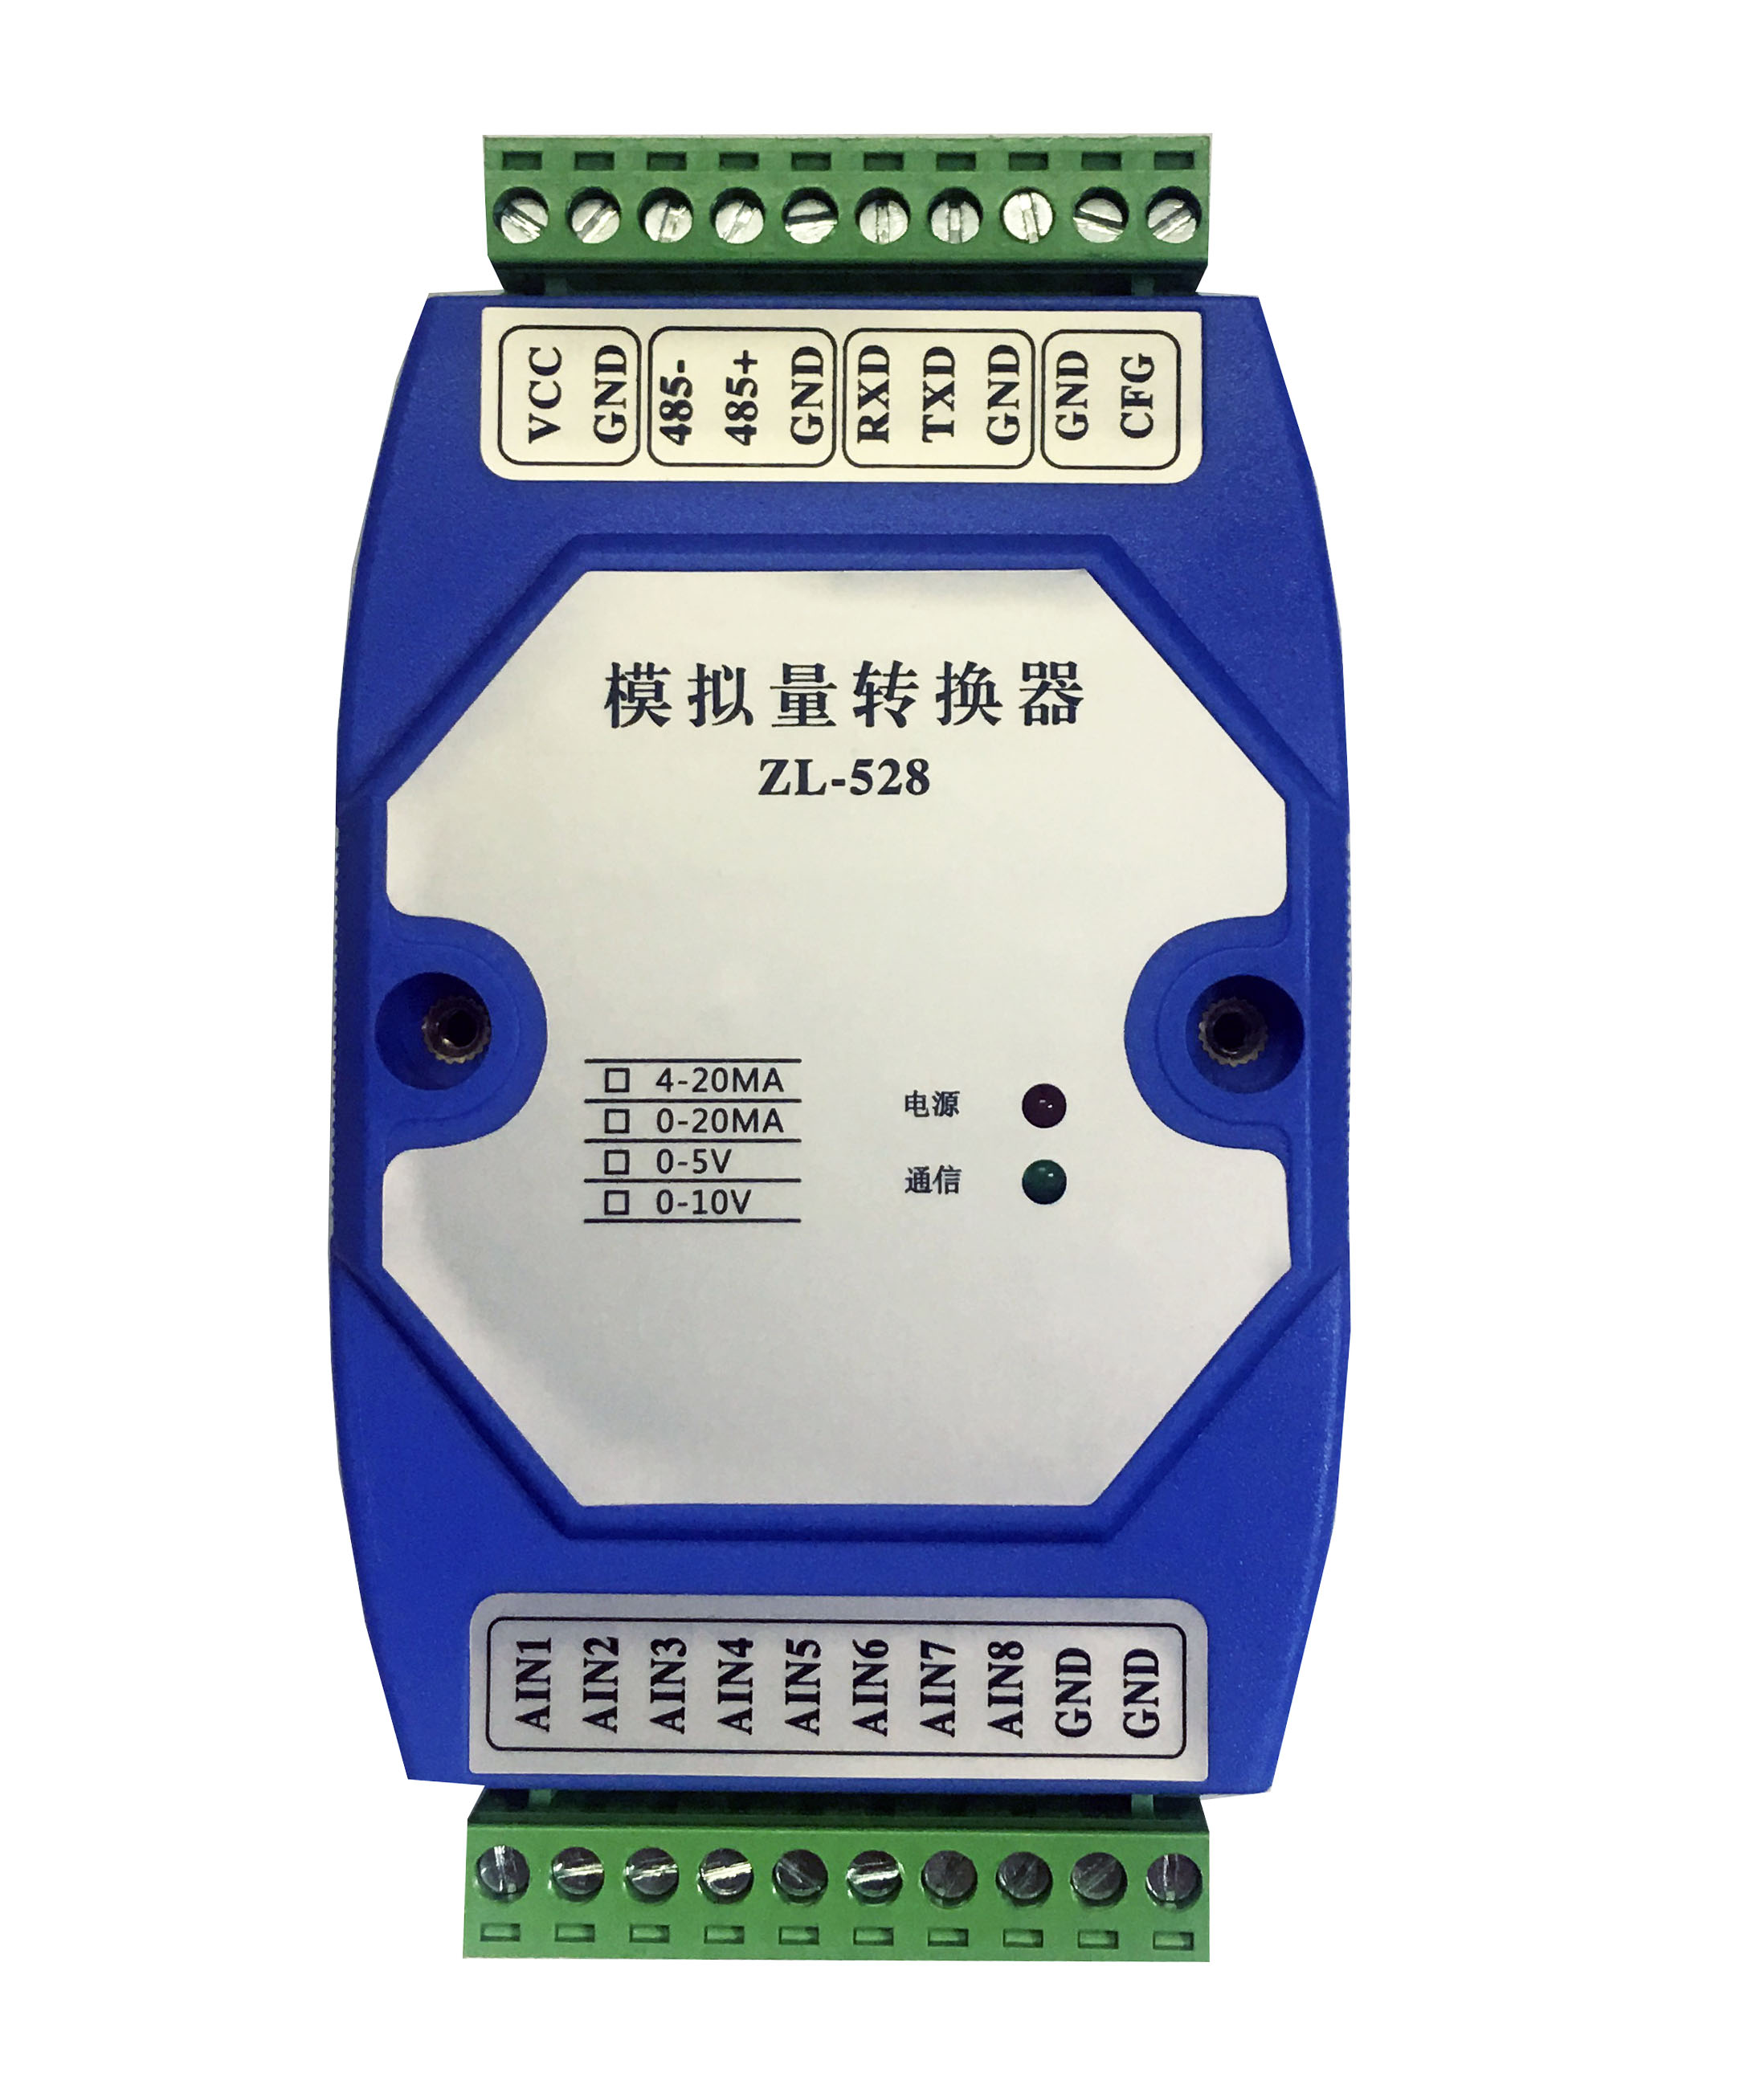 4-20mA to RS485 8 Analog Input Acquisition Module, 0-10V High-precision MODBUS-RTU